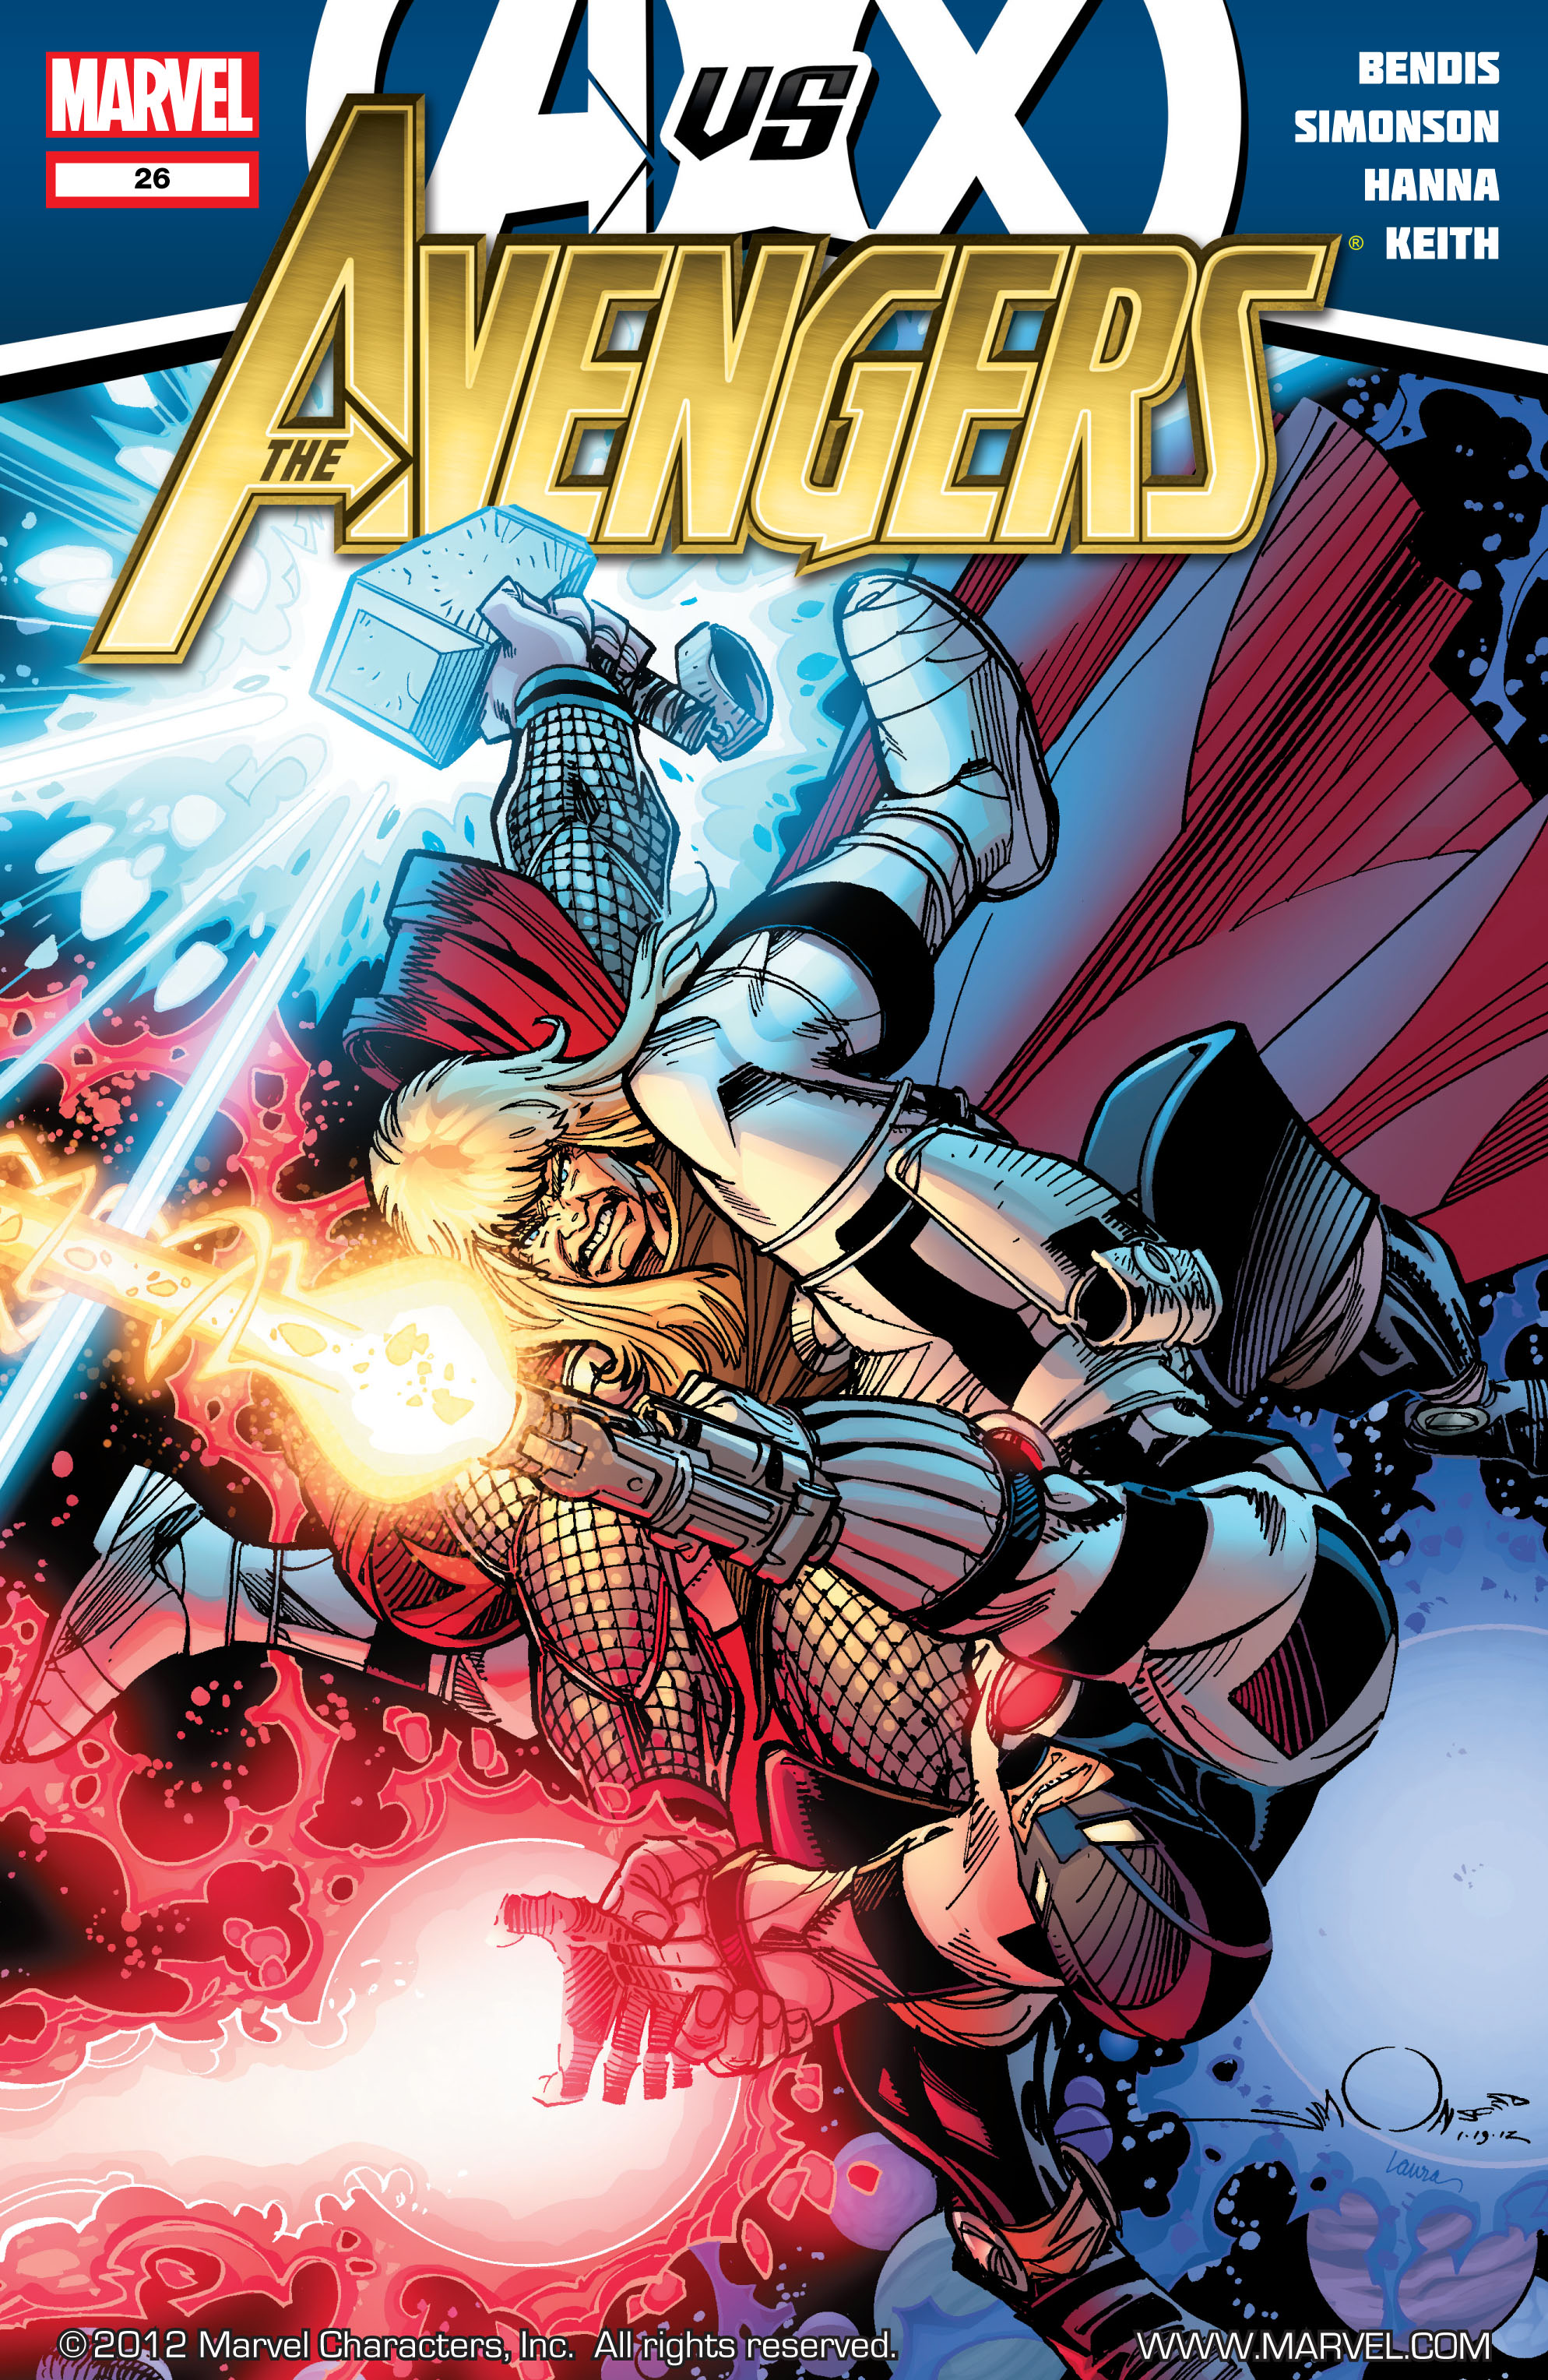 Read online Avengers (2010) comic -  Issue #26 - 1